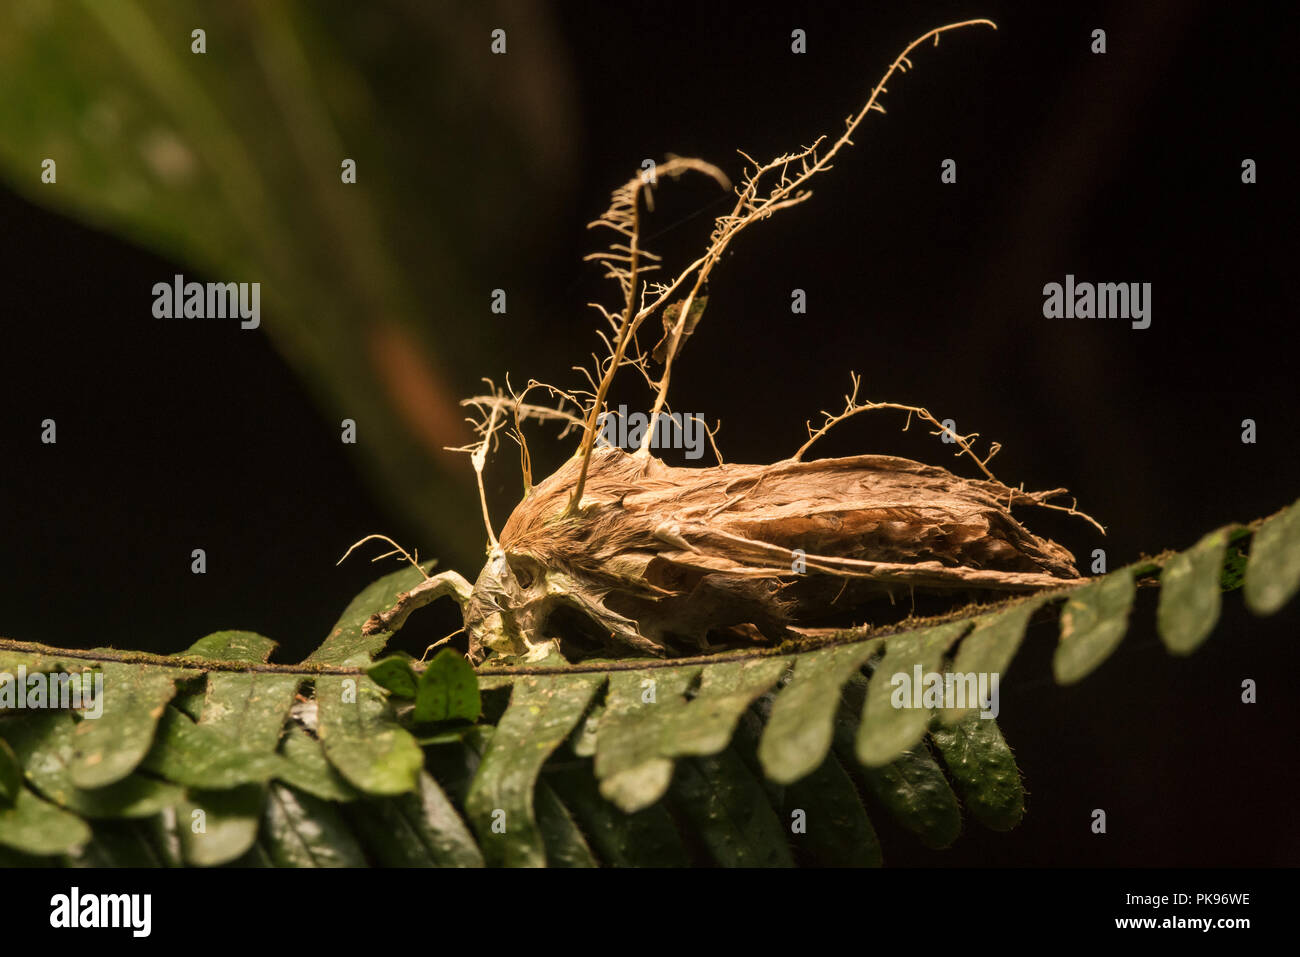 A moth that has been taken over by a body snatching fungus that has killed it and is now growing from its body spreading spores. - Stock Image